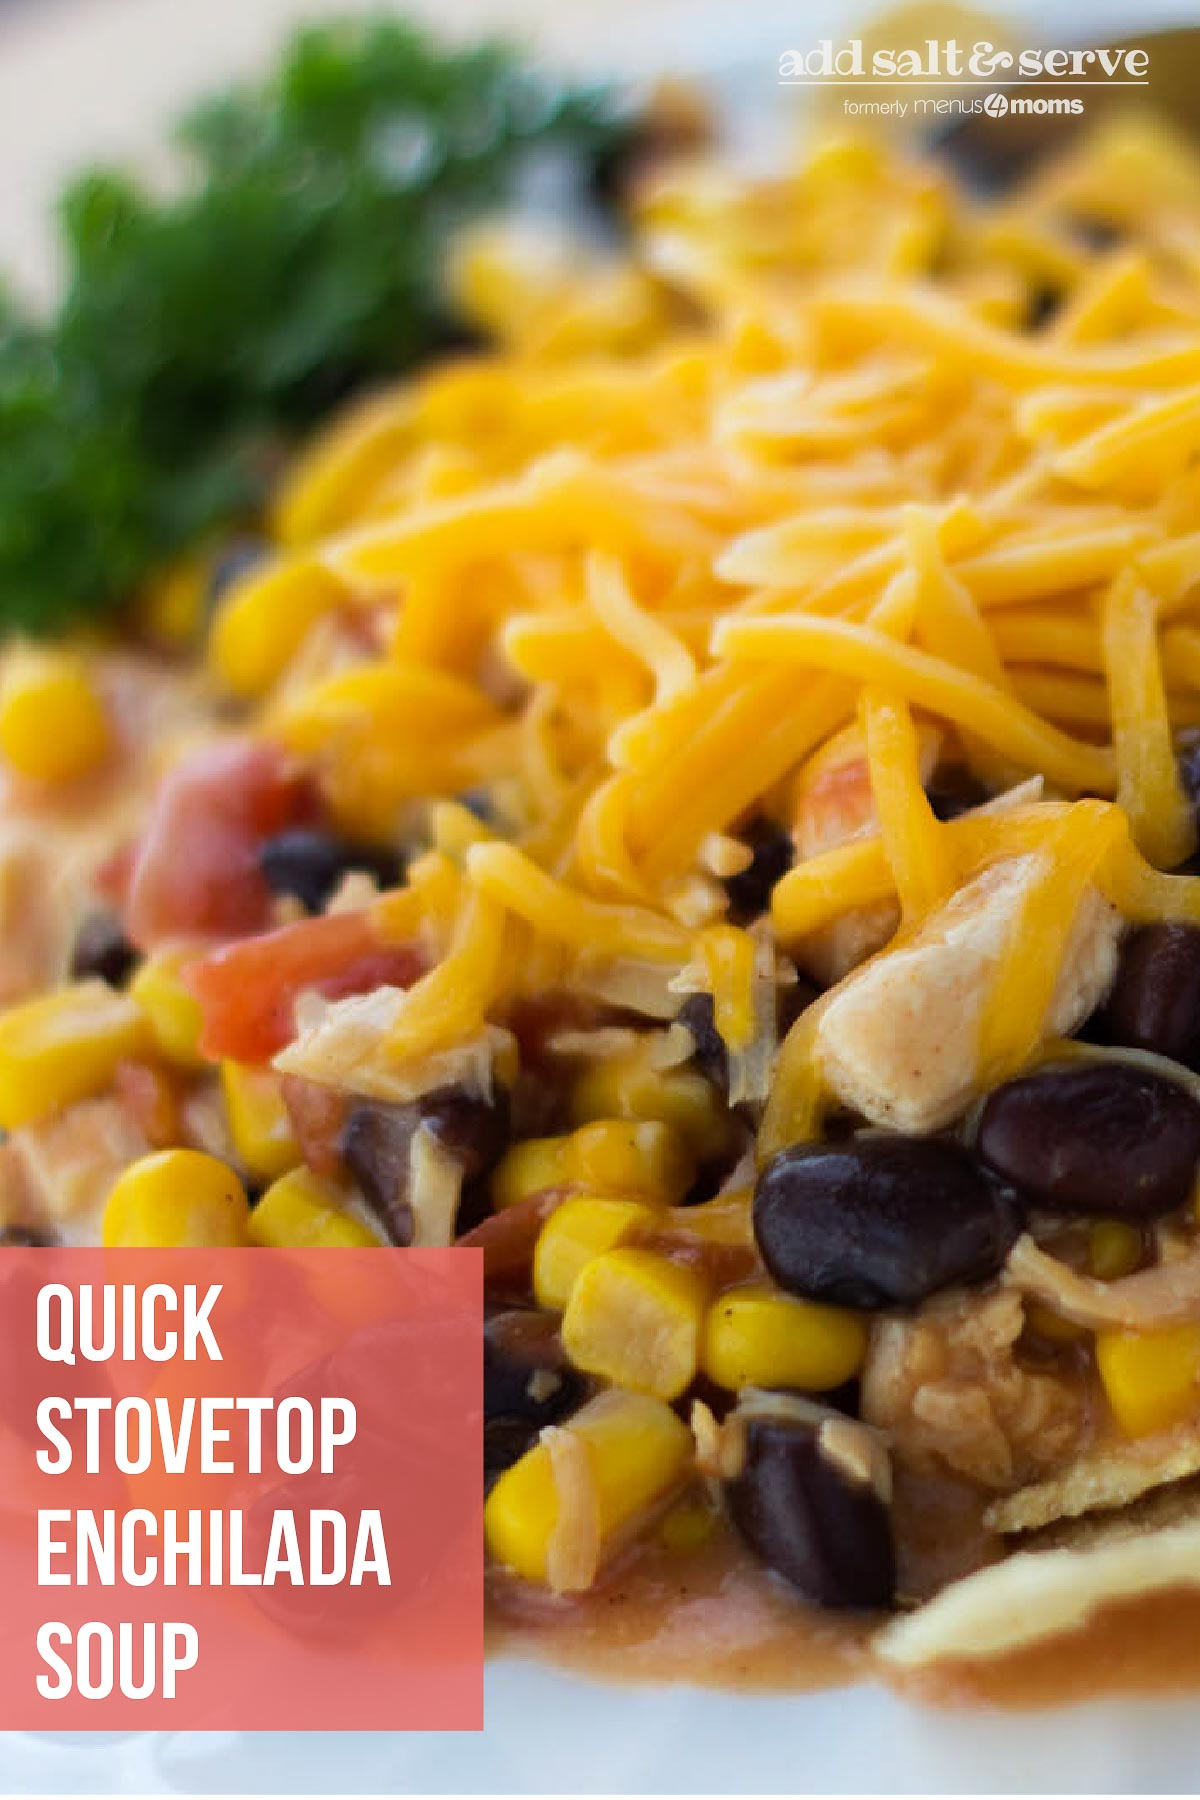 Corn and black beans topped with shredded cheddar cheese on a bed of tortilla chips on a white plate with text Quick Stovetop Enchilada Soup - Add Salt & Serve logo